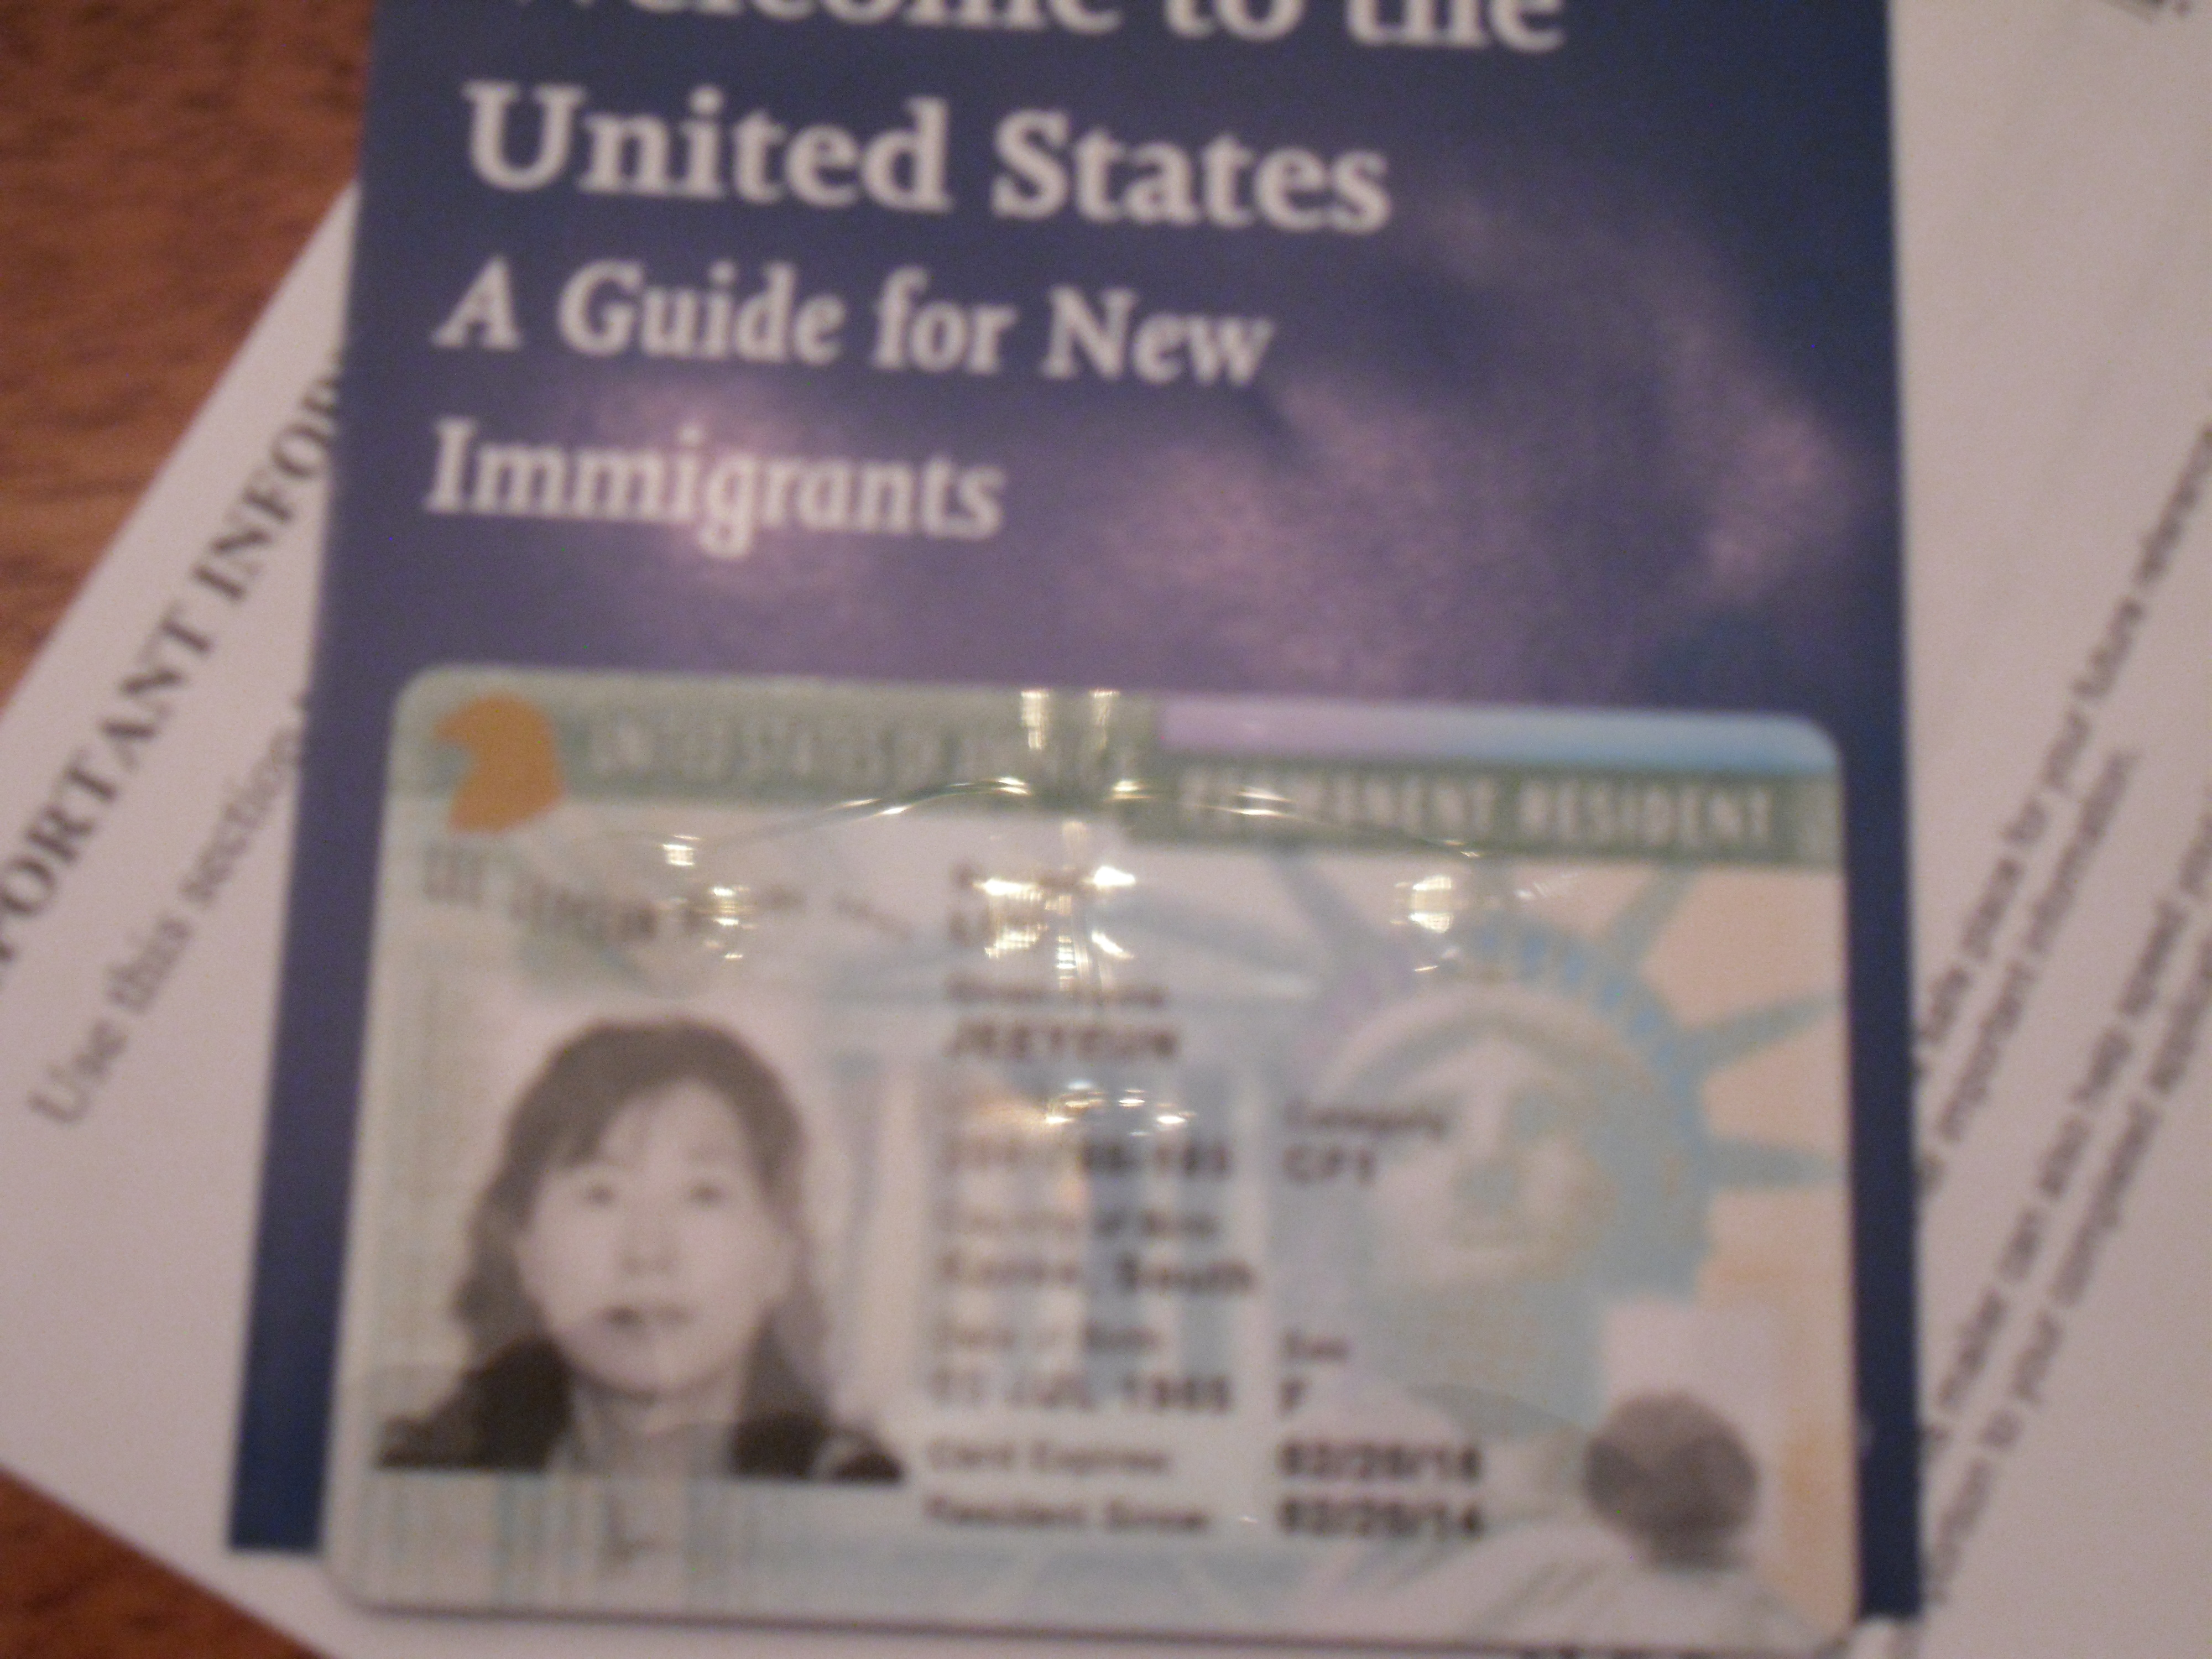 Permanent Resident Card Number Back Long awaited green card